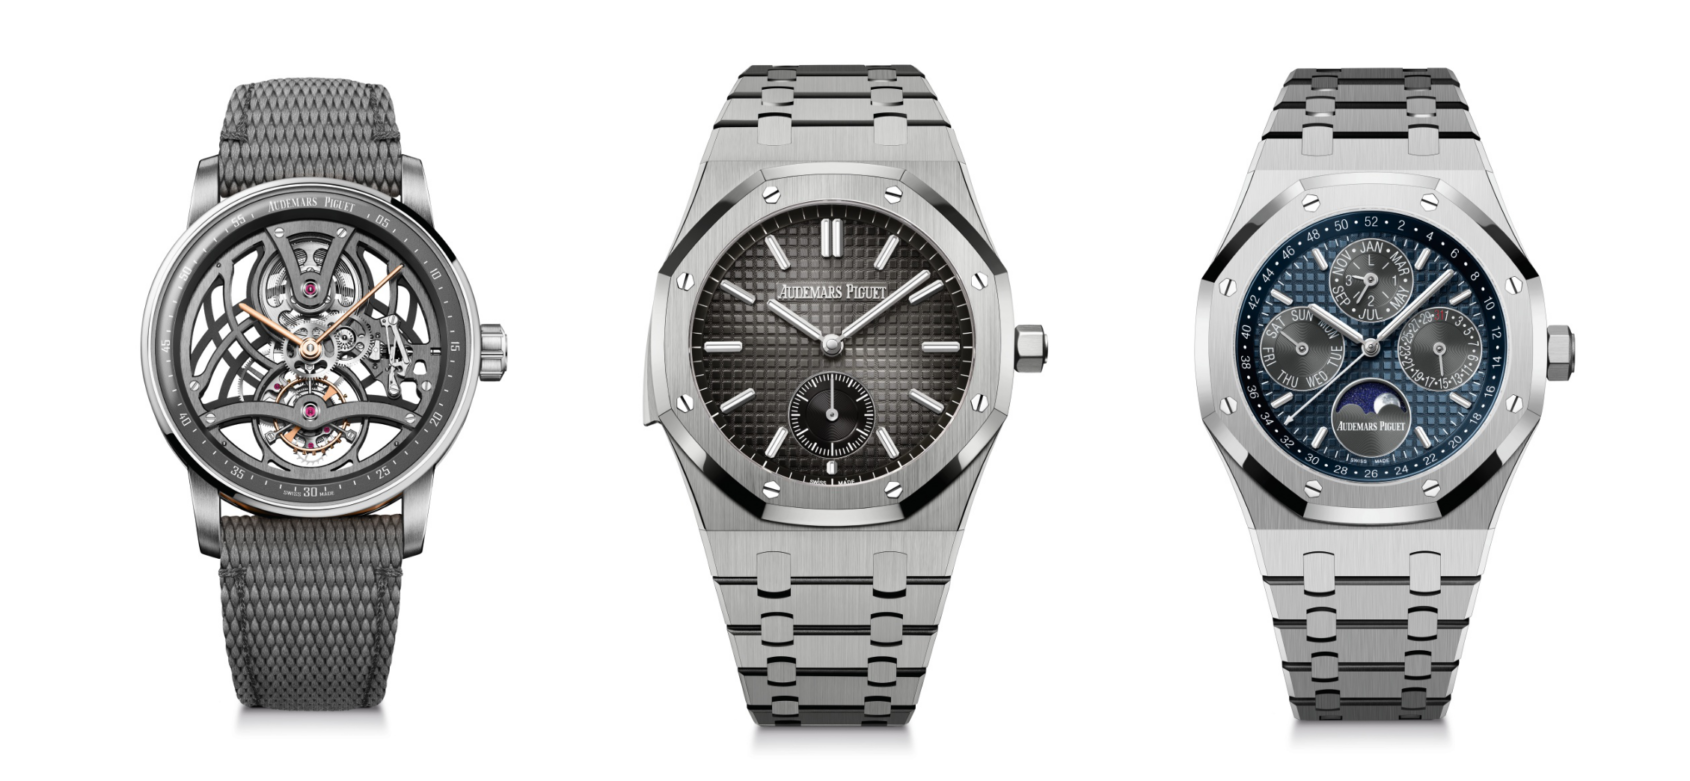 Audemars Piguet introduces three highly complicated pieces into the 2021 collection